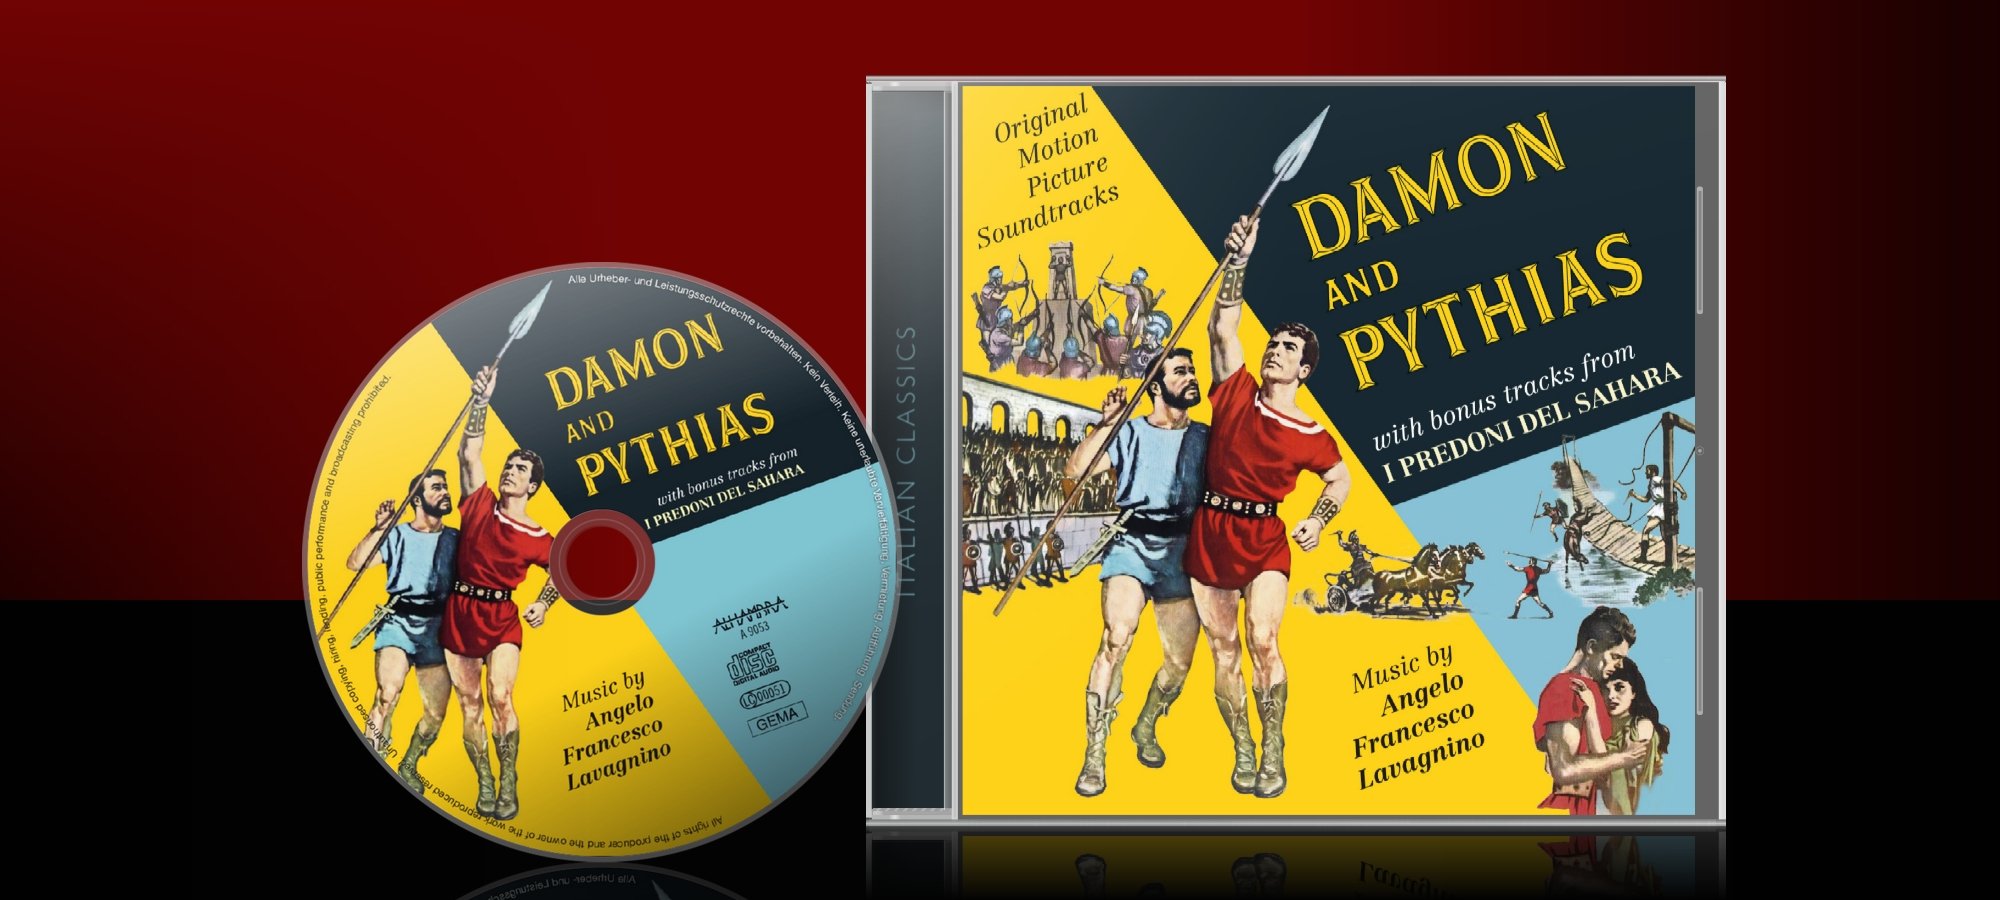 Damon and Pythias / I Predoni del Sahara